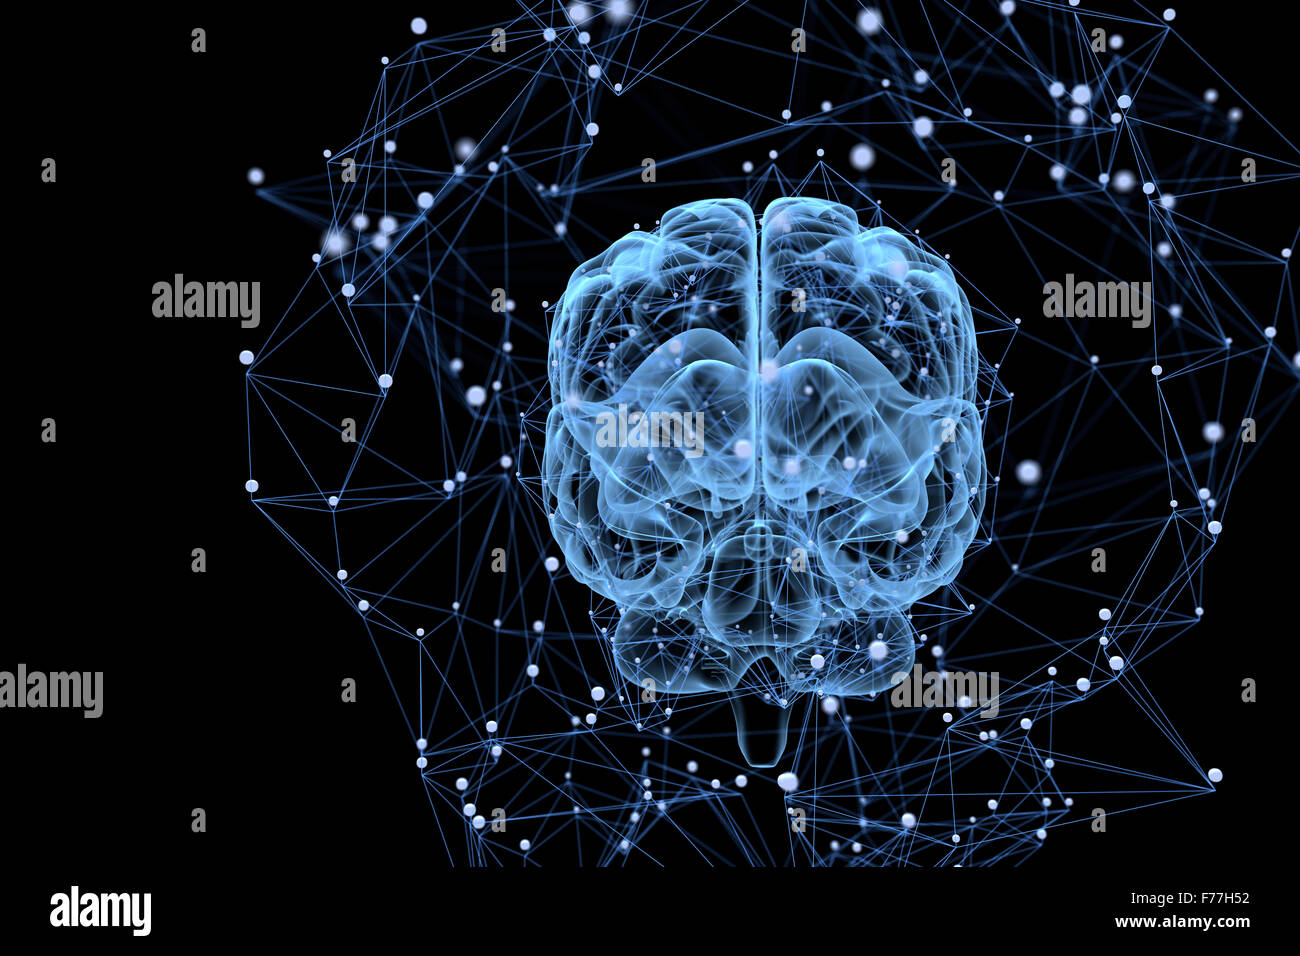 Illustration of the thought processes in the brain - Stock Image